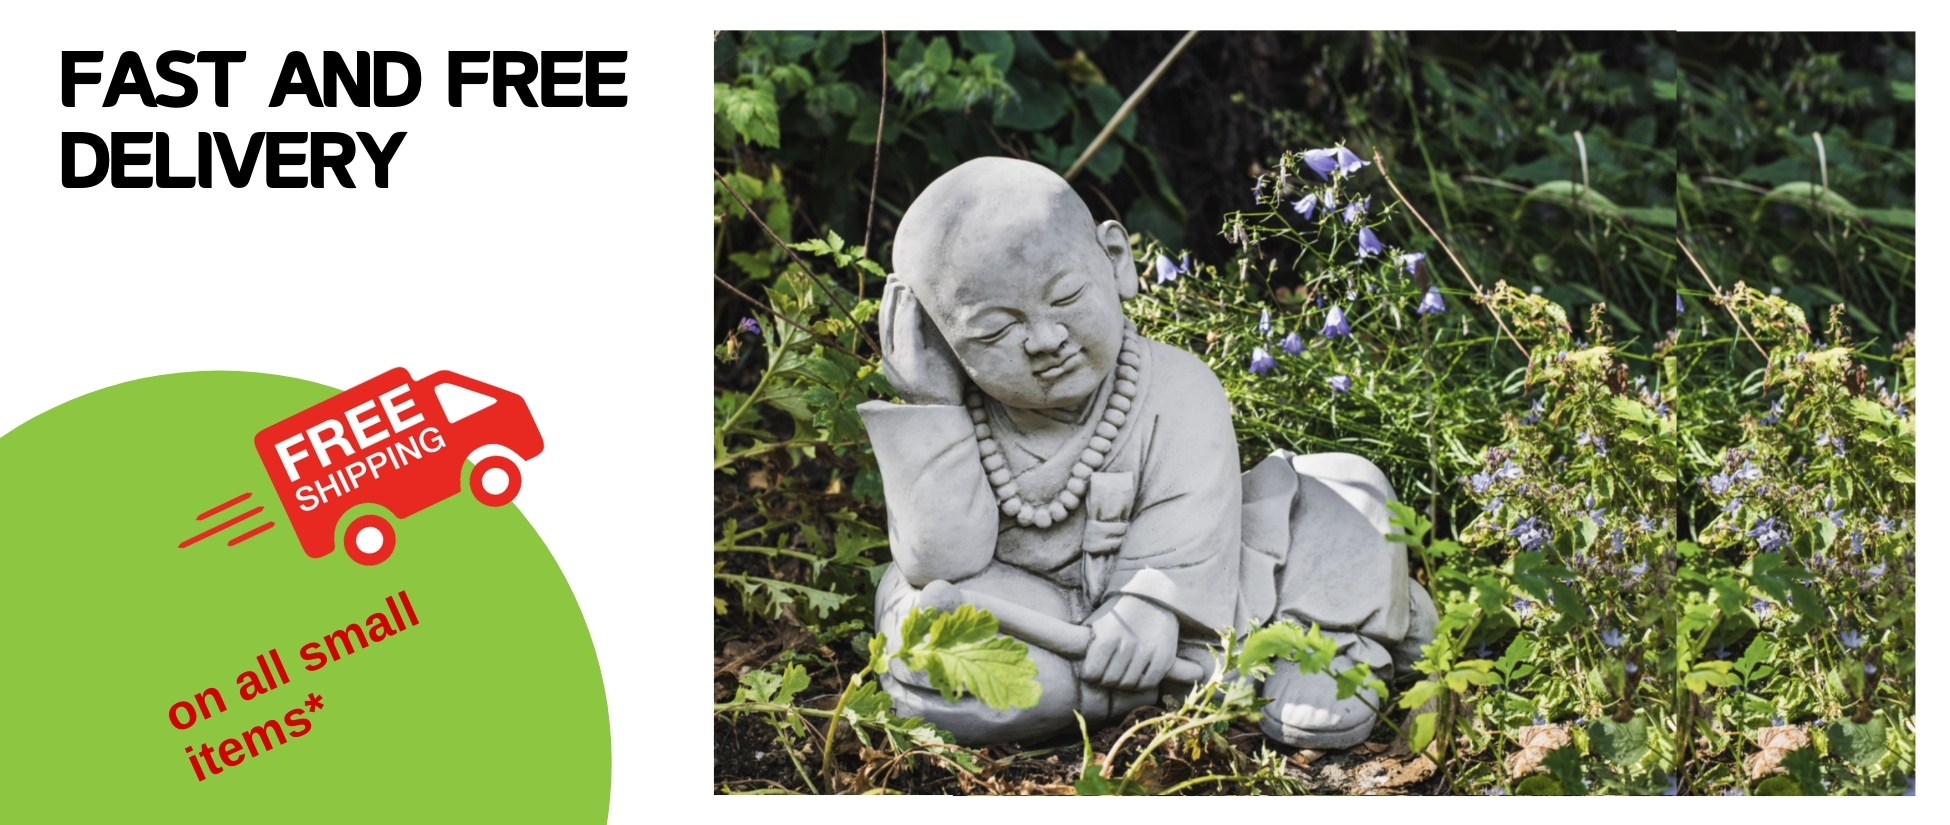 free delivery free shipping stone garden ornaments